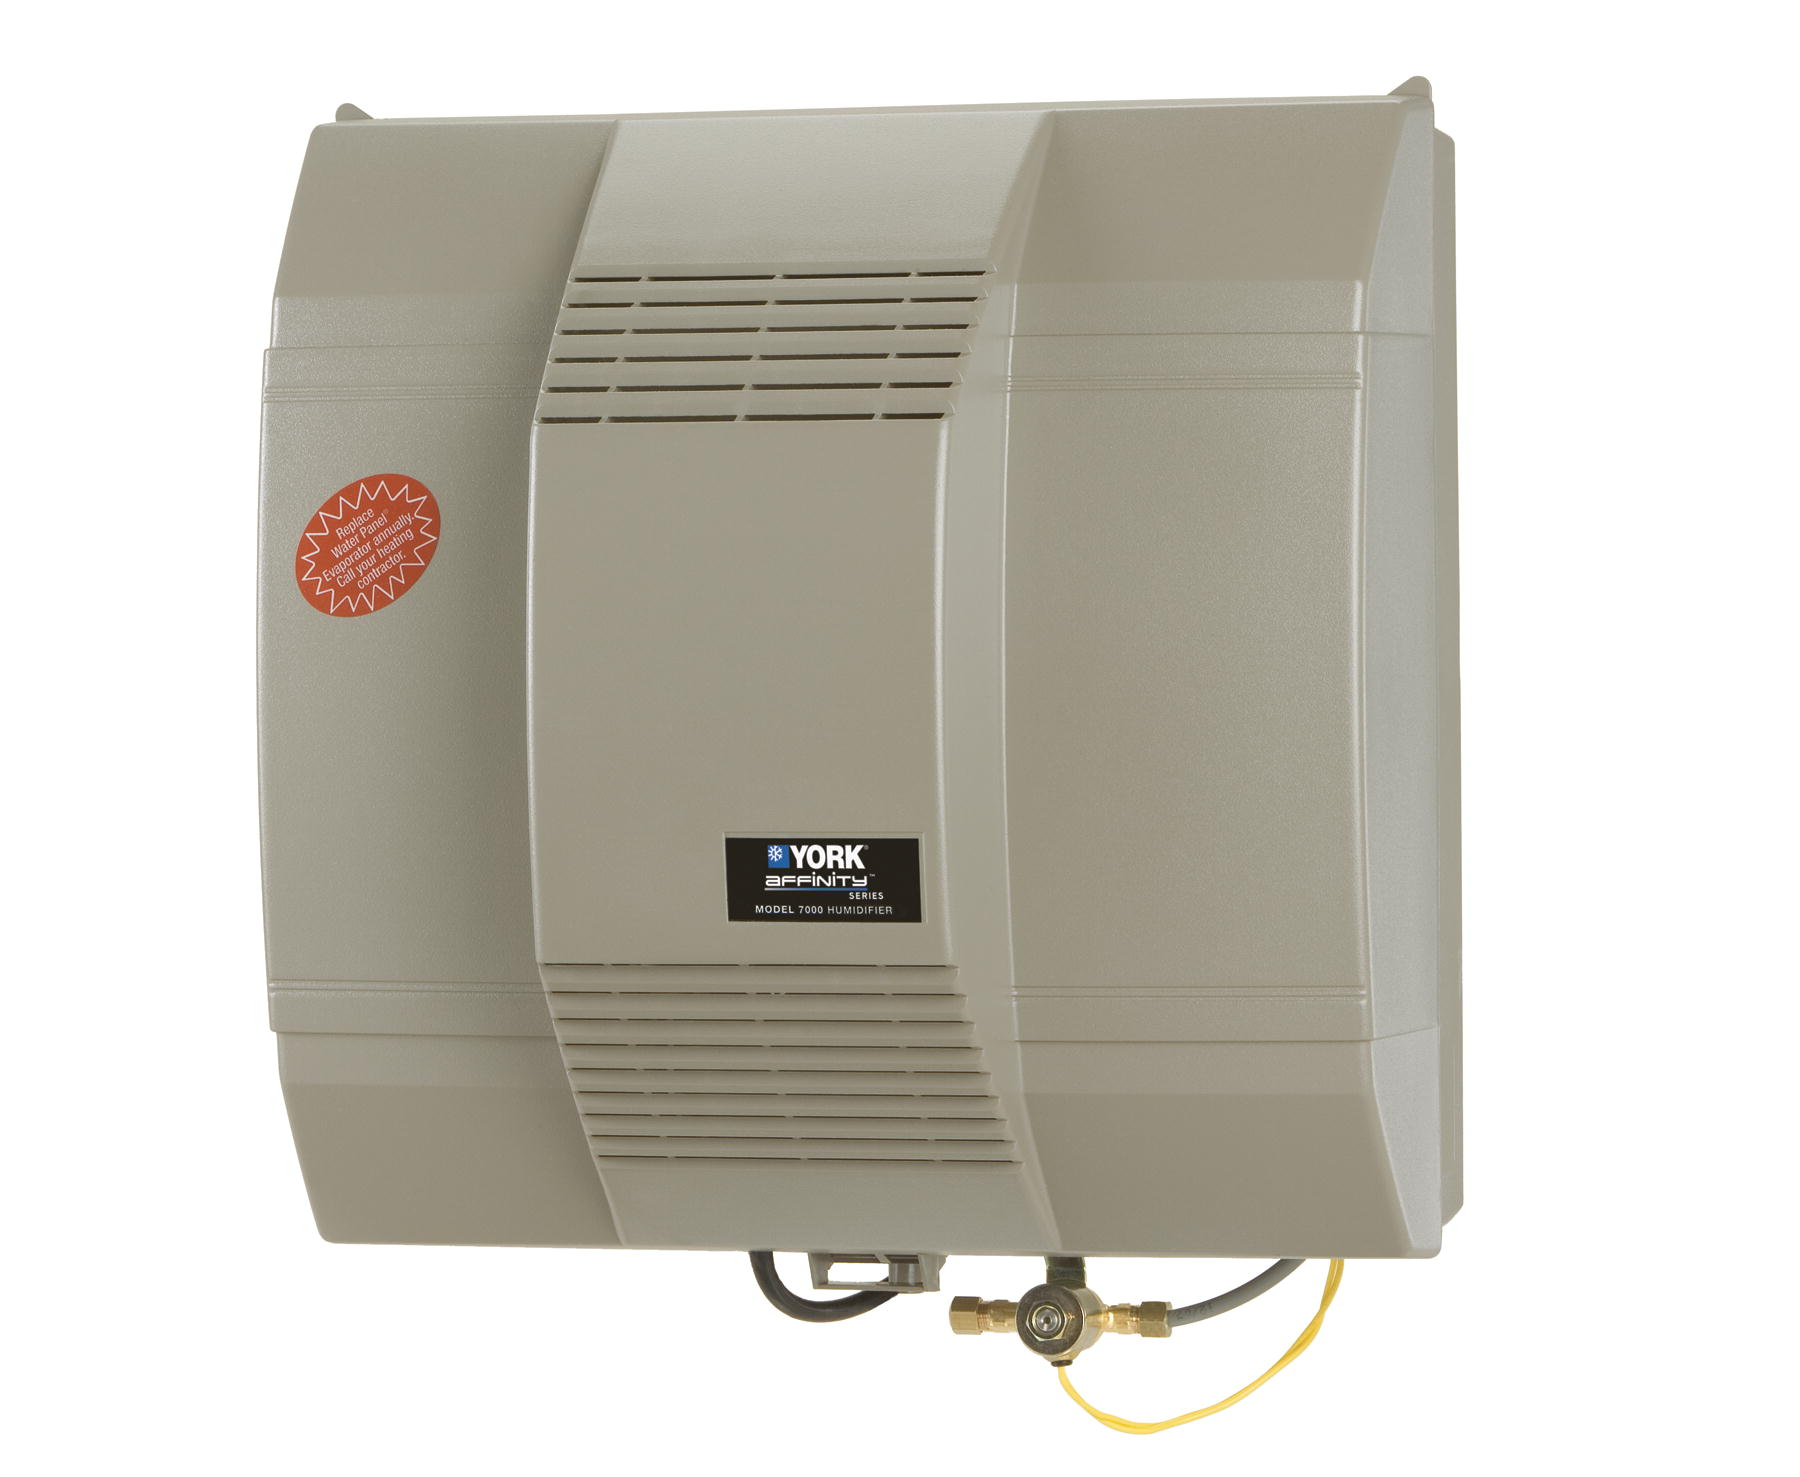 Portable Air Conditioning Units: Portable Air Conditioning Units Pros  #A24629